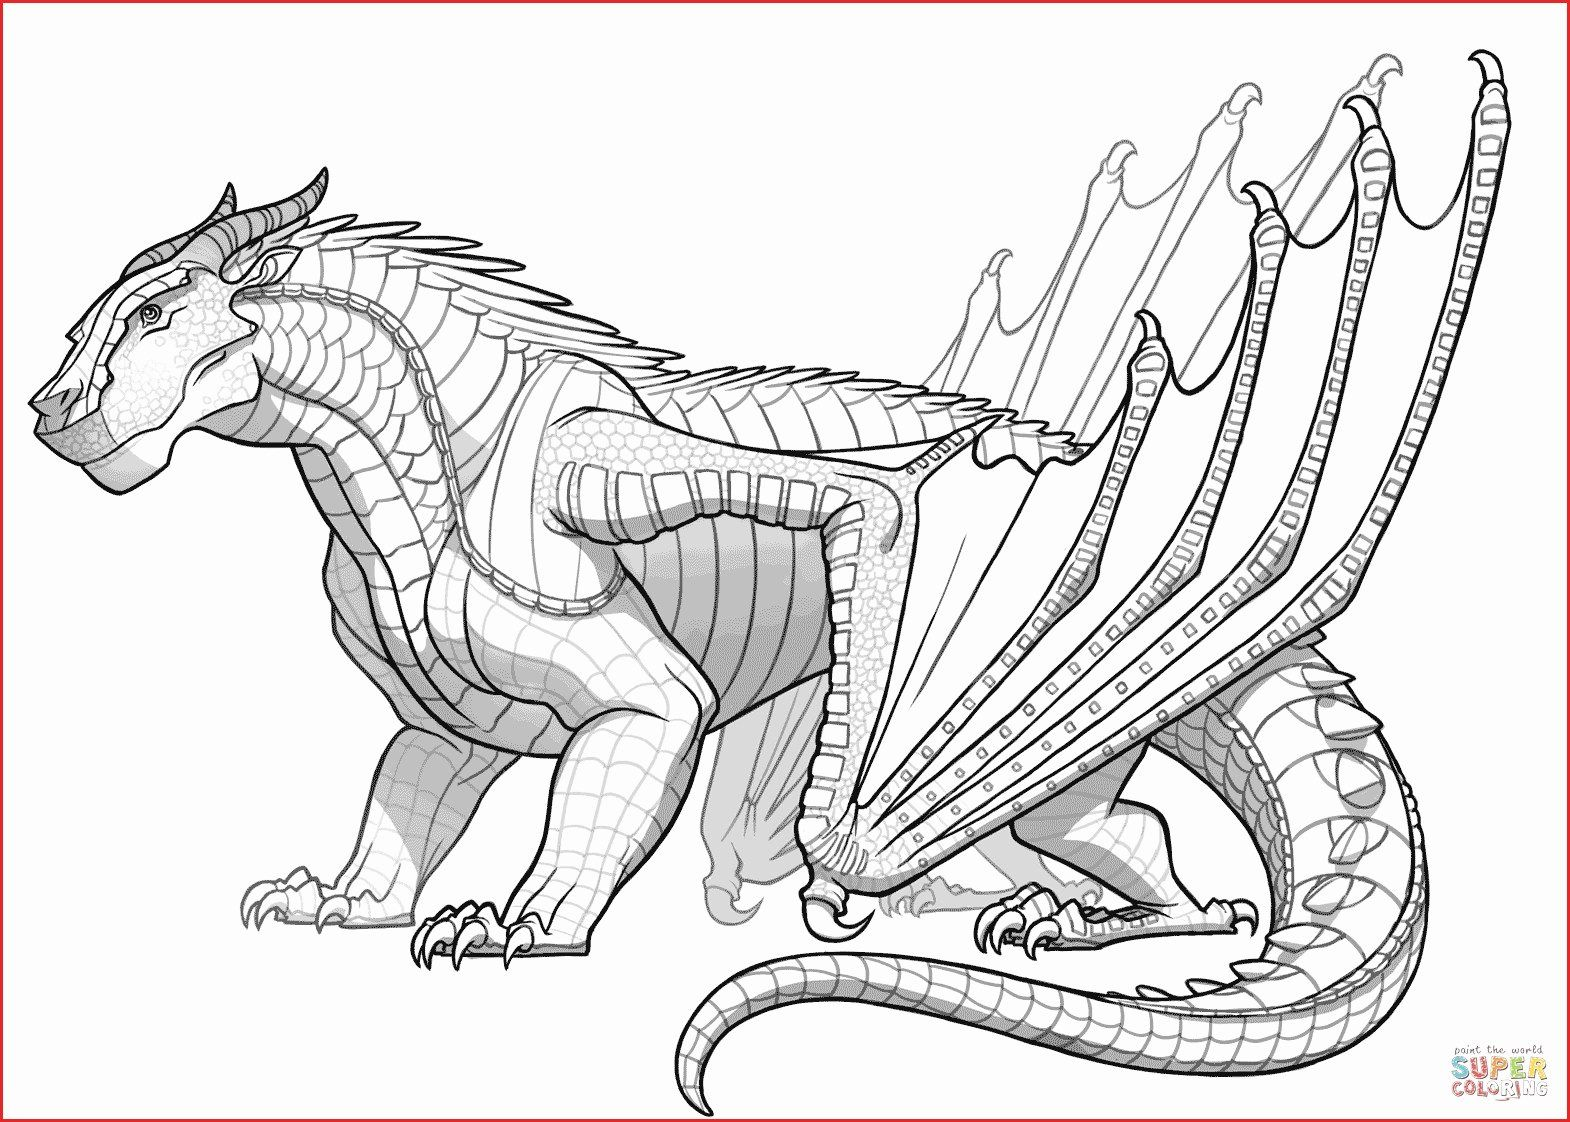 Sun Coloring Pages For Preschoolers Beautiful Coloring Pages Free Dragon Coloring Pages For Zoo Animal Coloring Pages Horse Coloring Pages Dragon Coloring Page